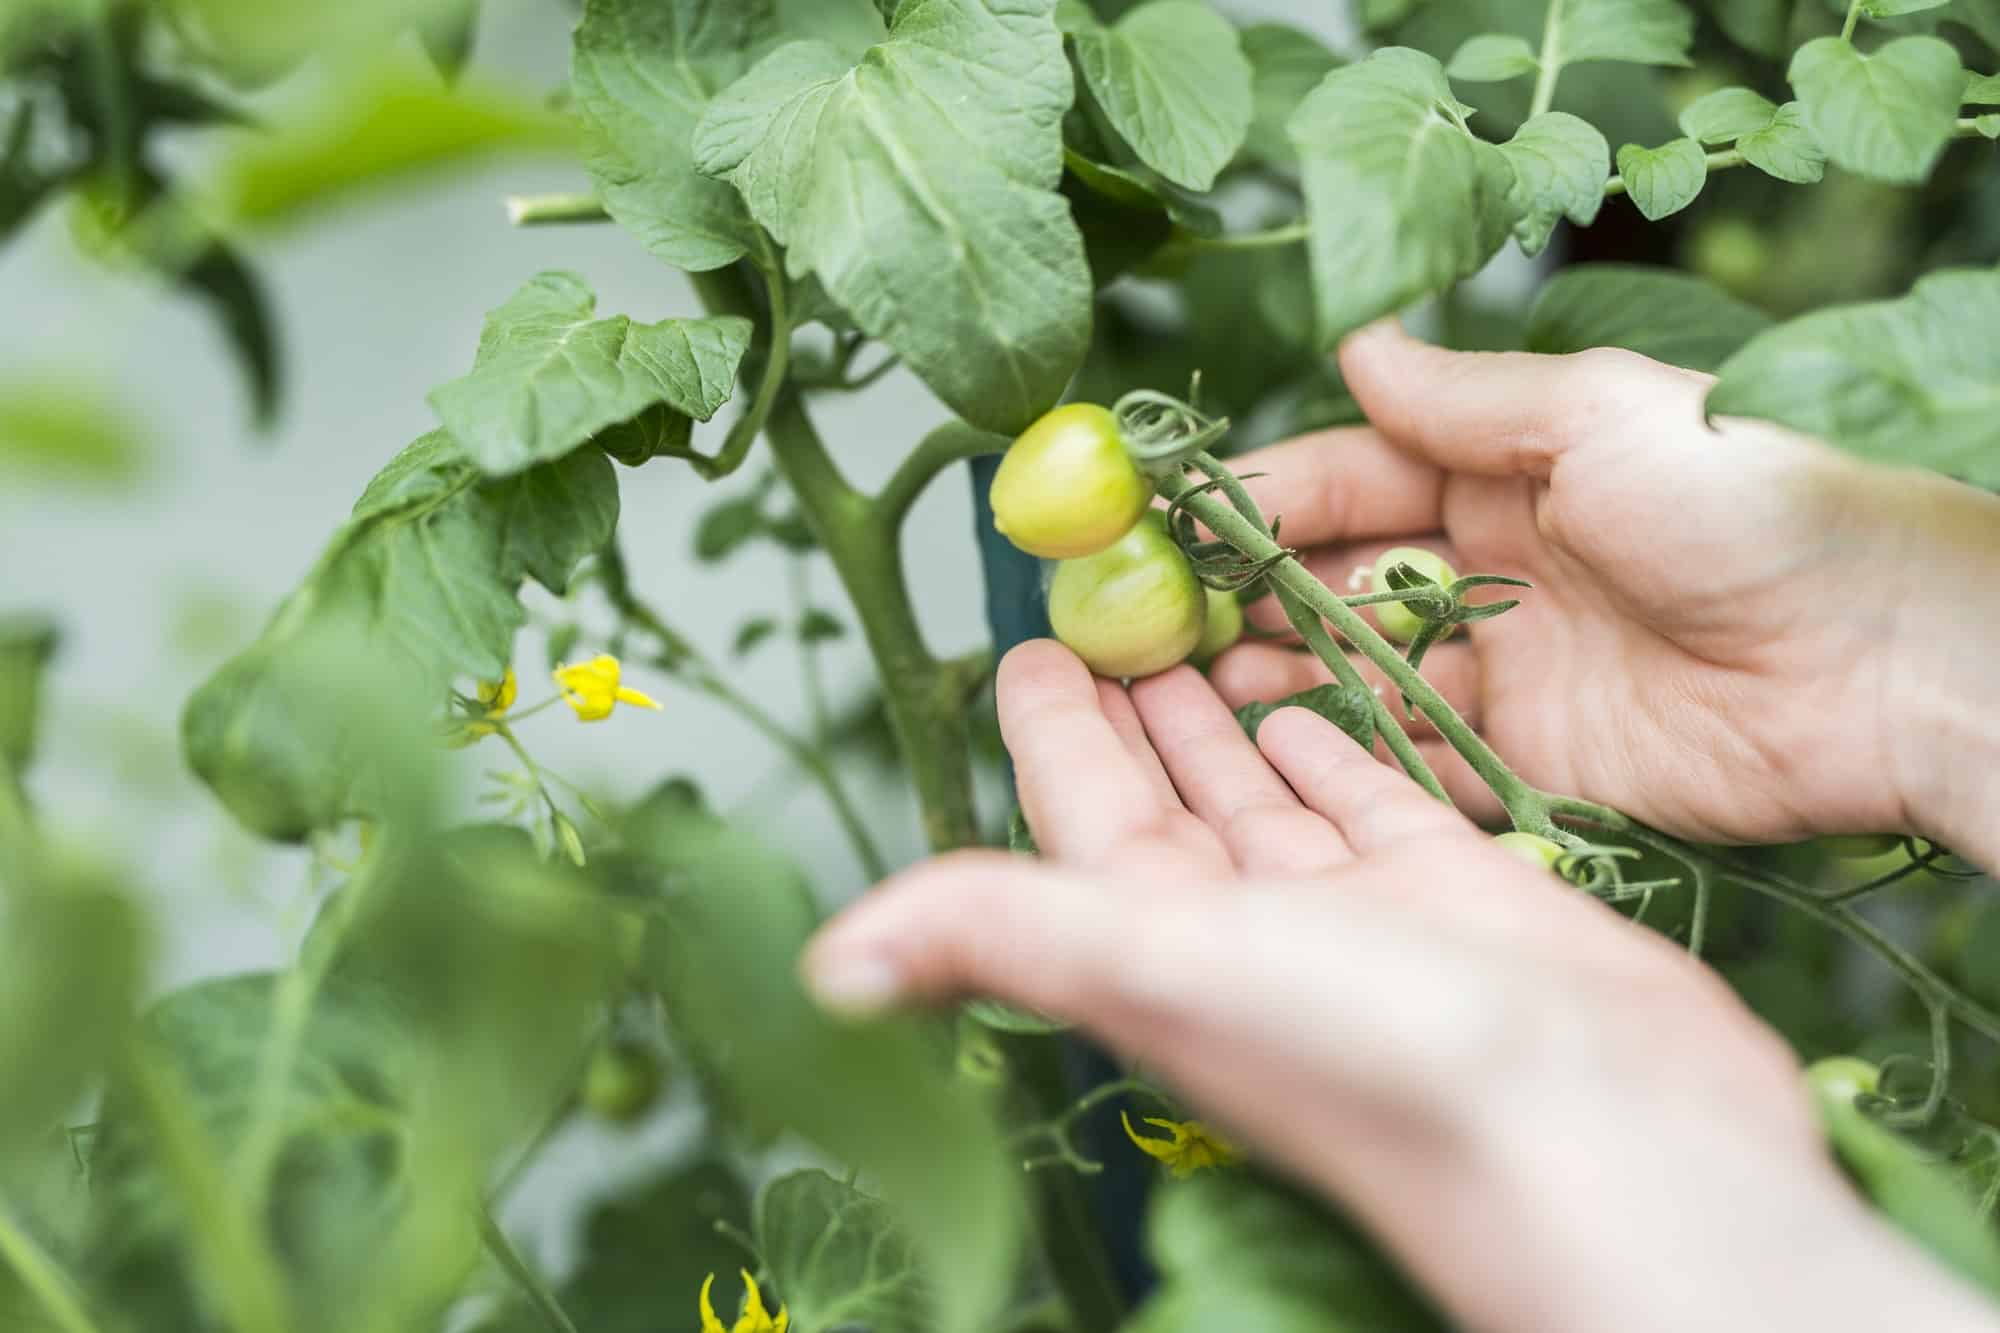 How long does it take for a tomato seed to produce tomatoes?